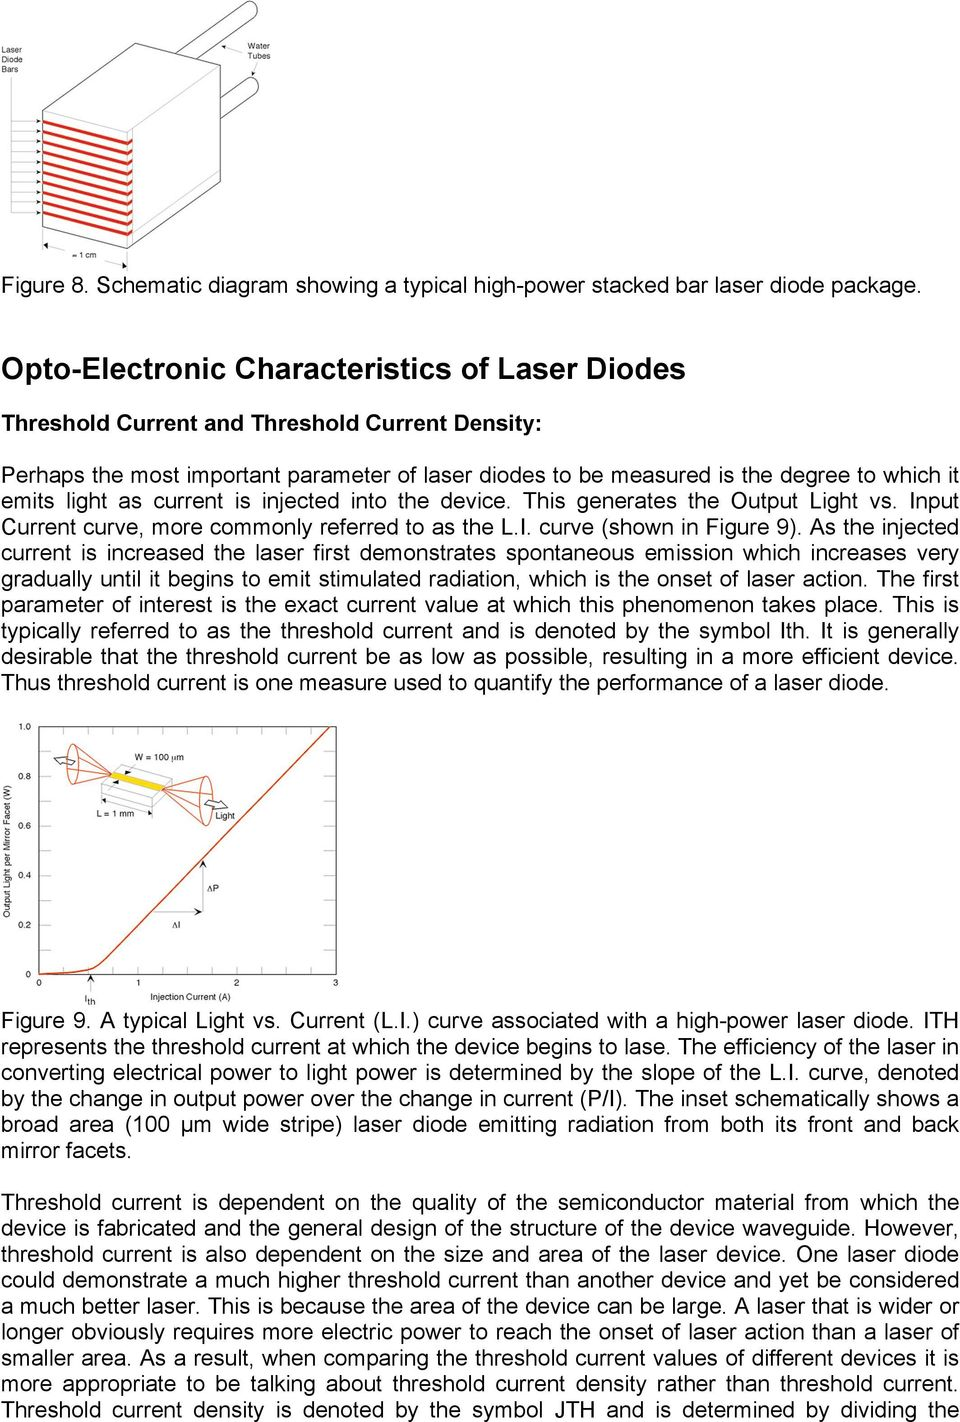 Photonics Newport Corporation Pdf Heat Pump For Laser Diodes Stabilization Circuit Wiring Diagrams Light As Current Is Injected Into The Device This Generates Output Vs